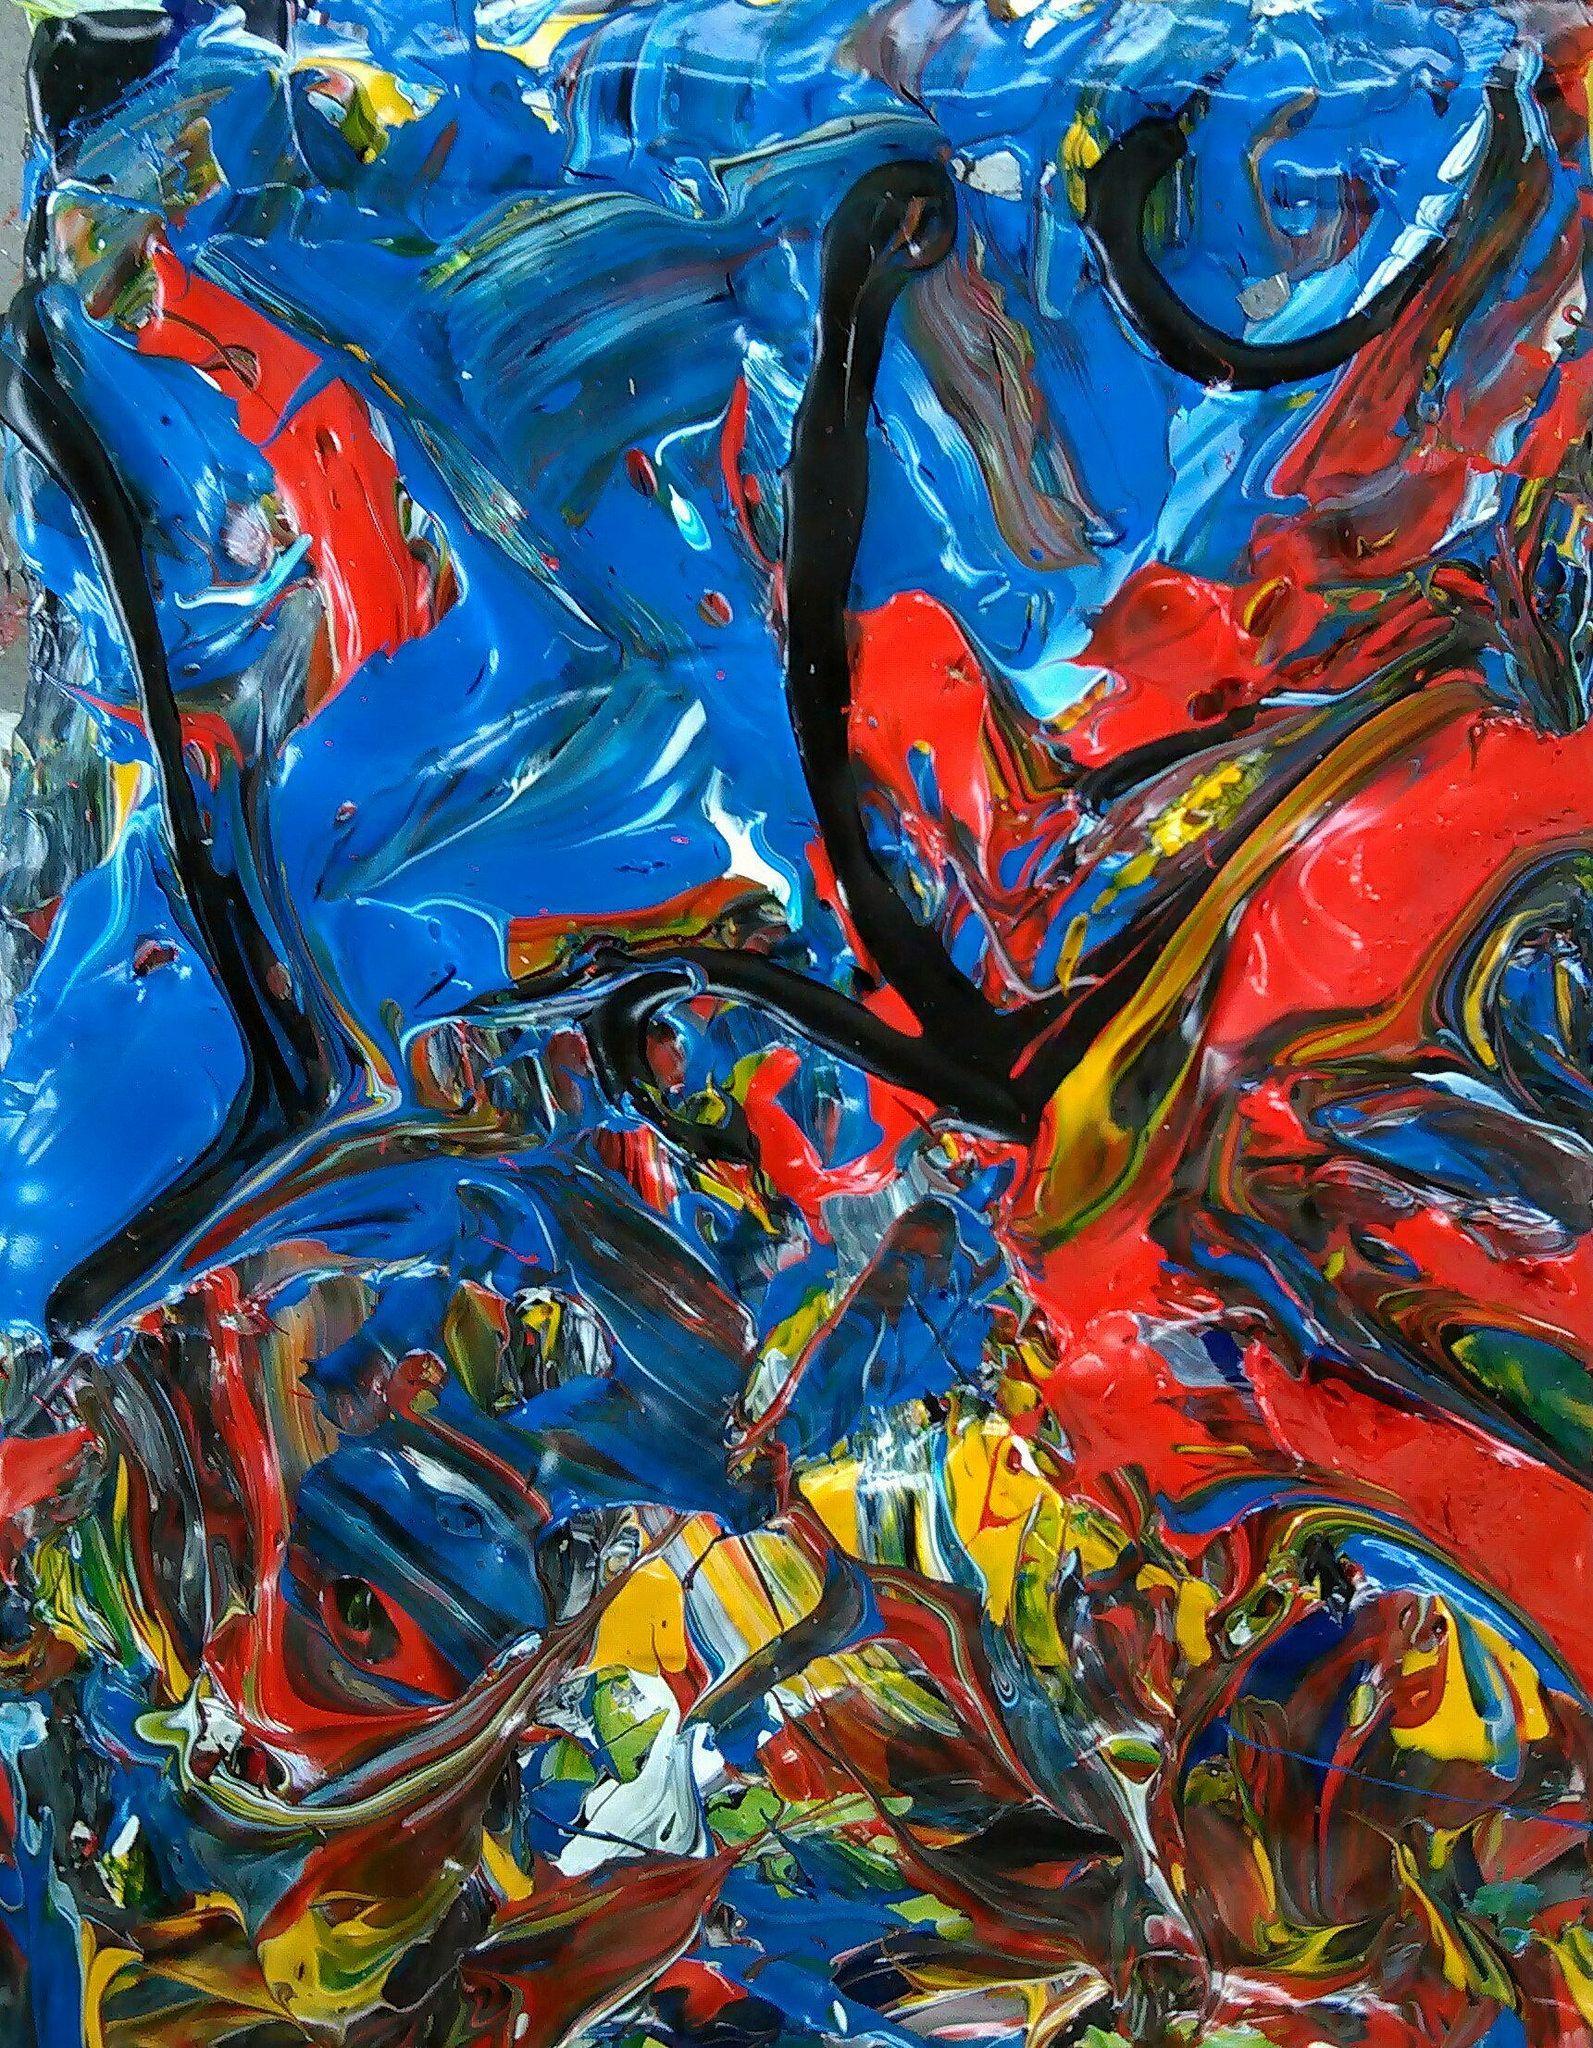 A lovely abstract piece from Flickr, source - https://flic.kr/p/Hnb72L  #art #painting #abstract #modern #flickr